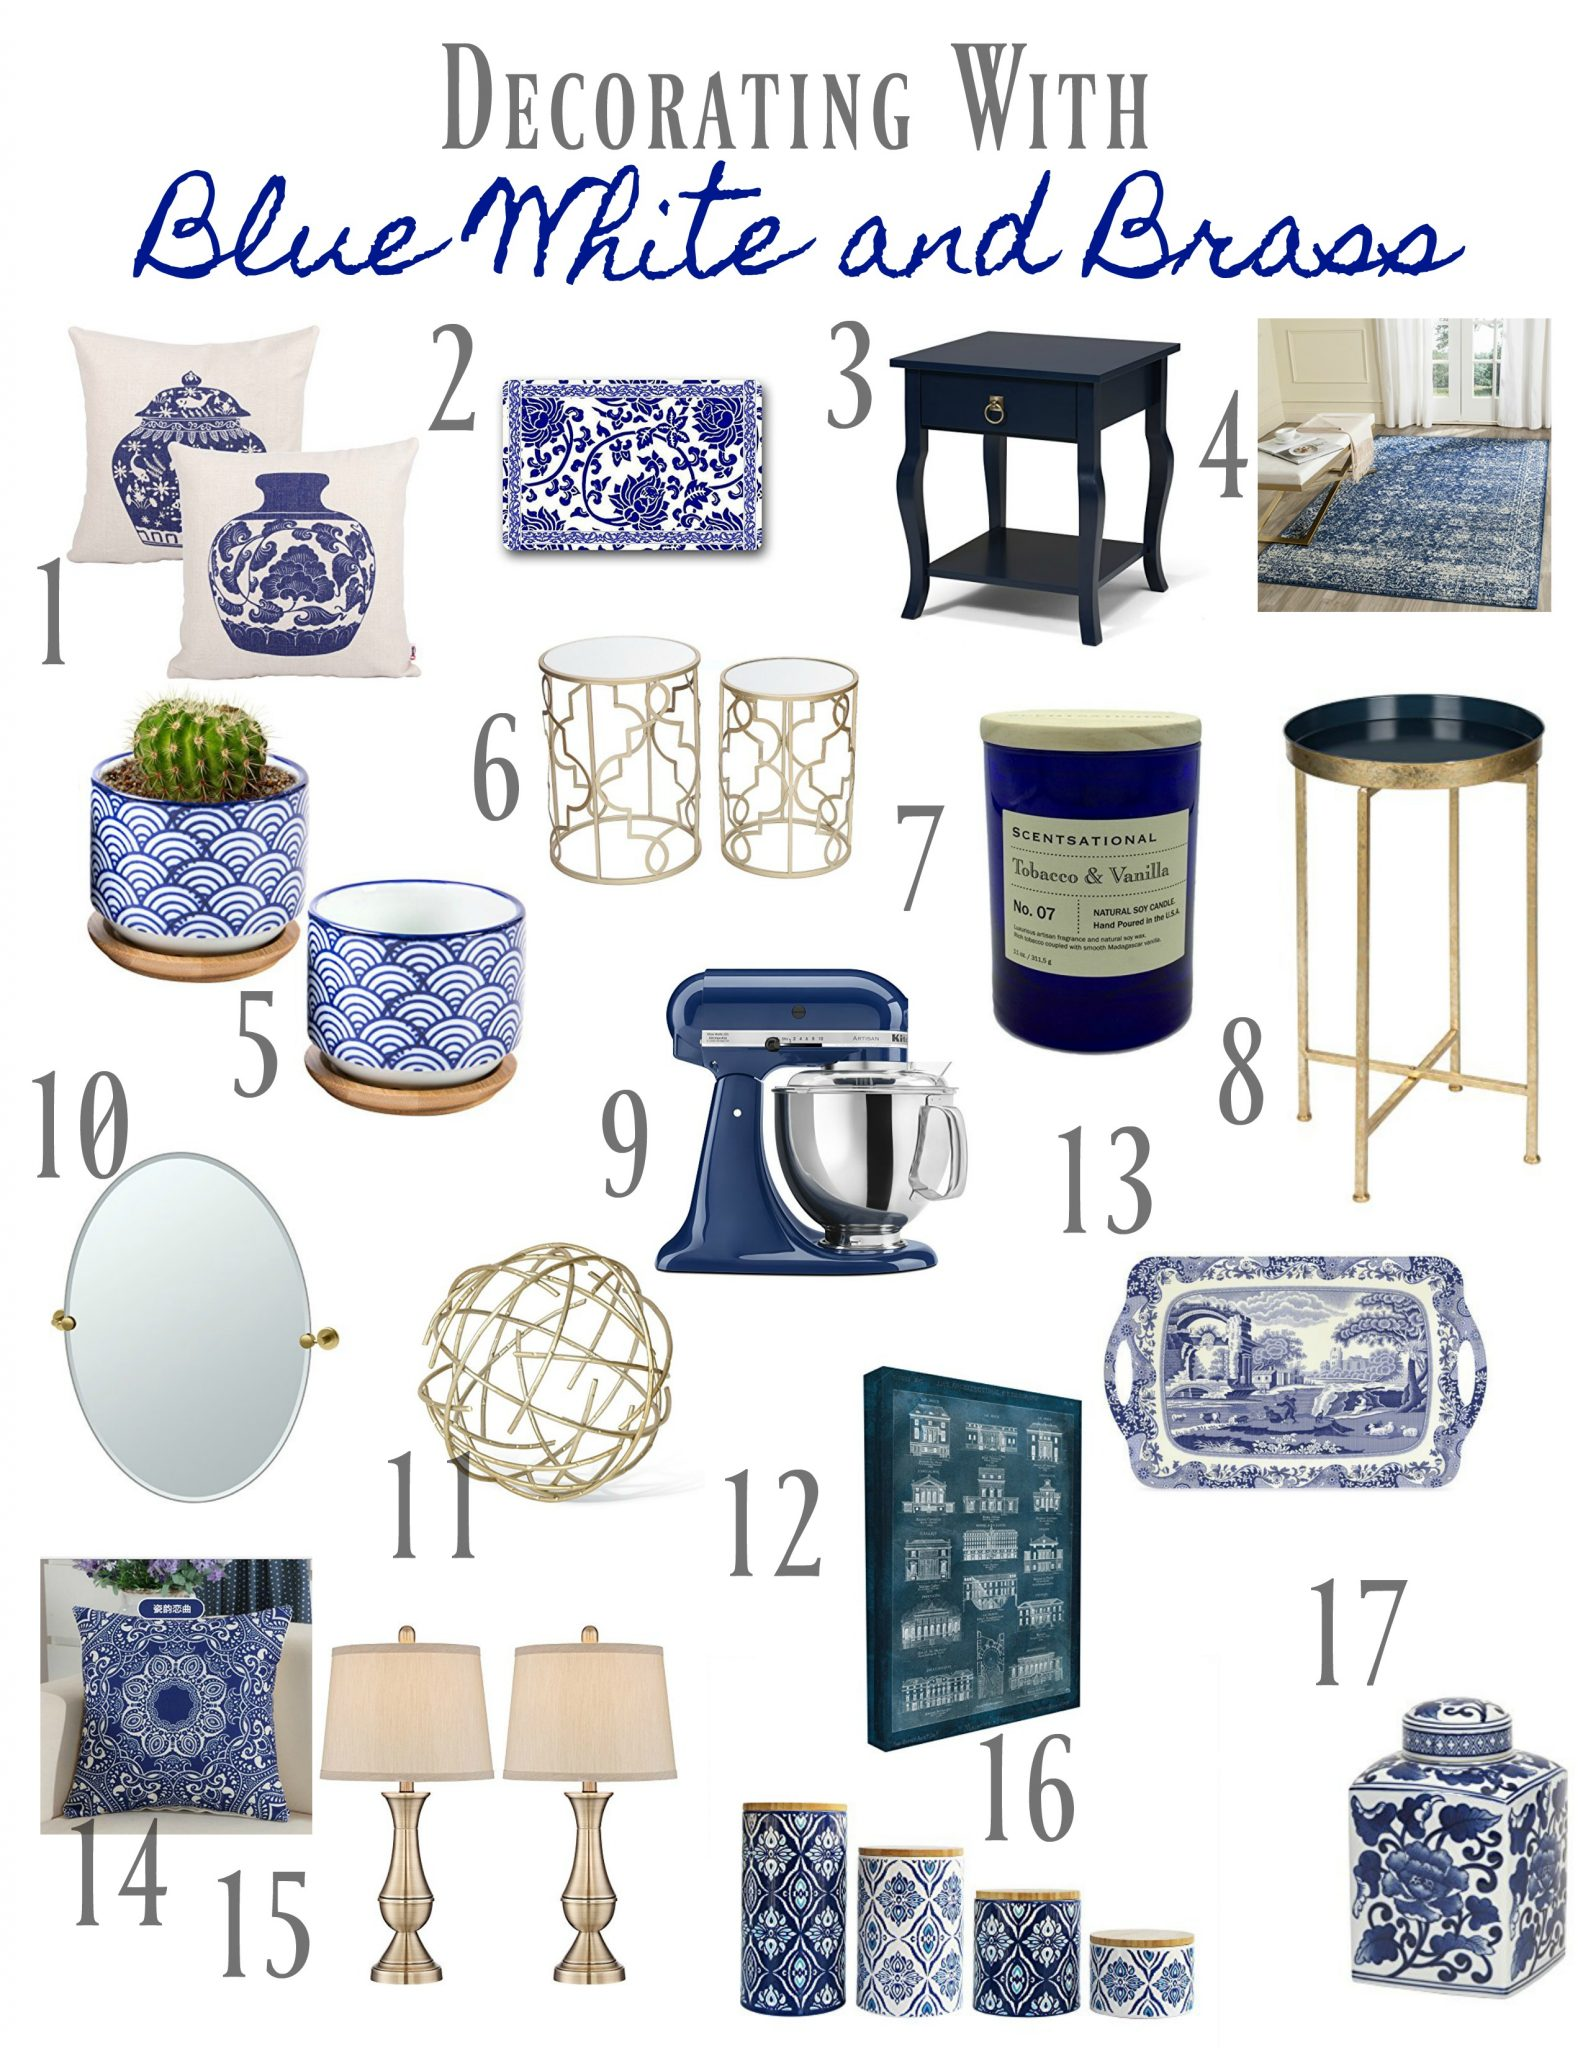 Decorating with blue and white. Blue and white home decor accessories.